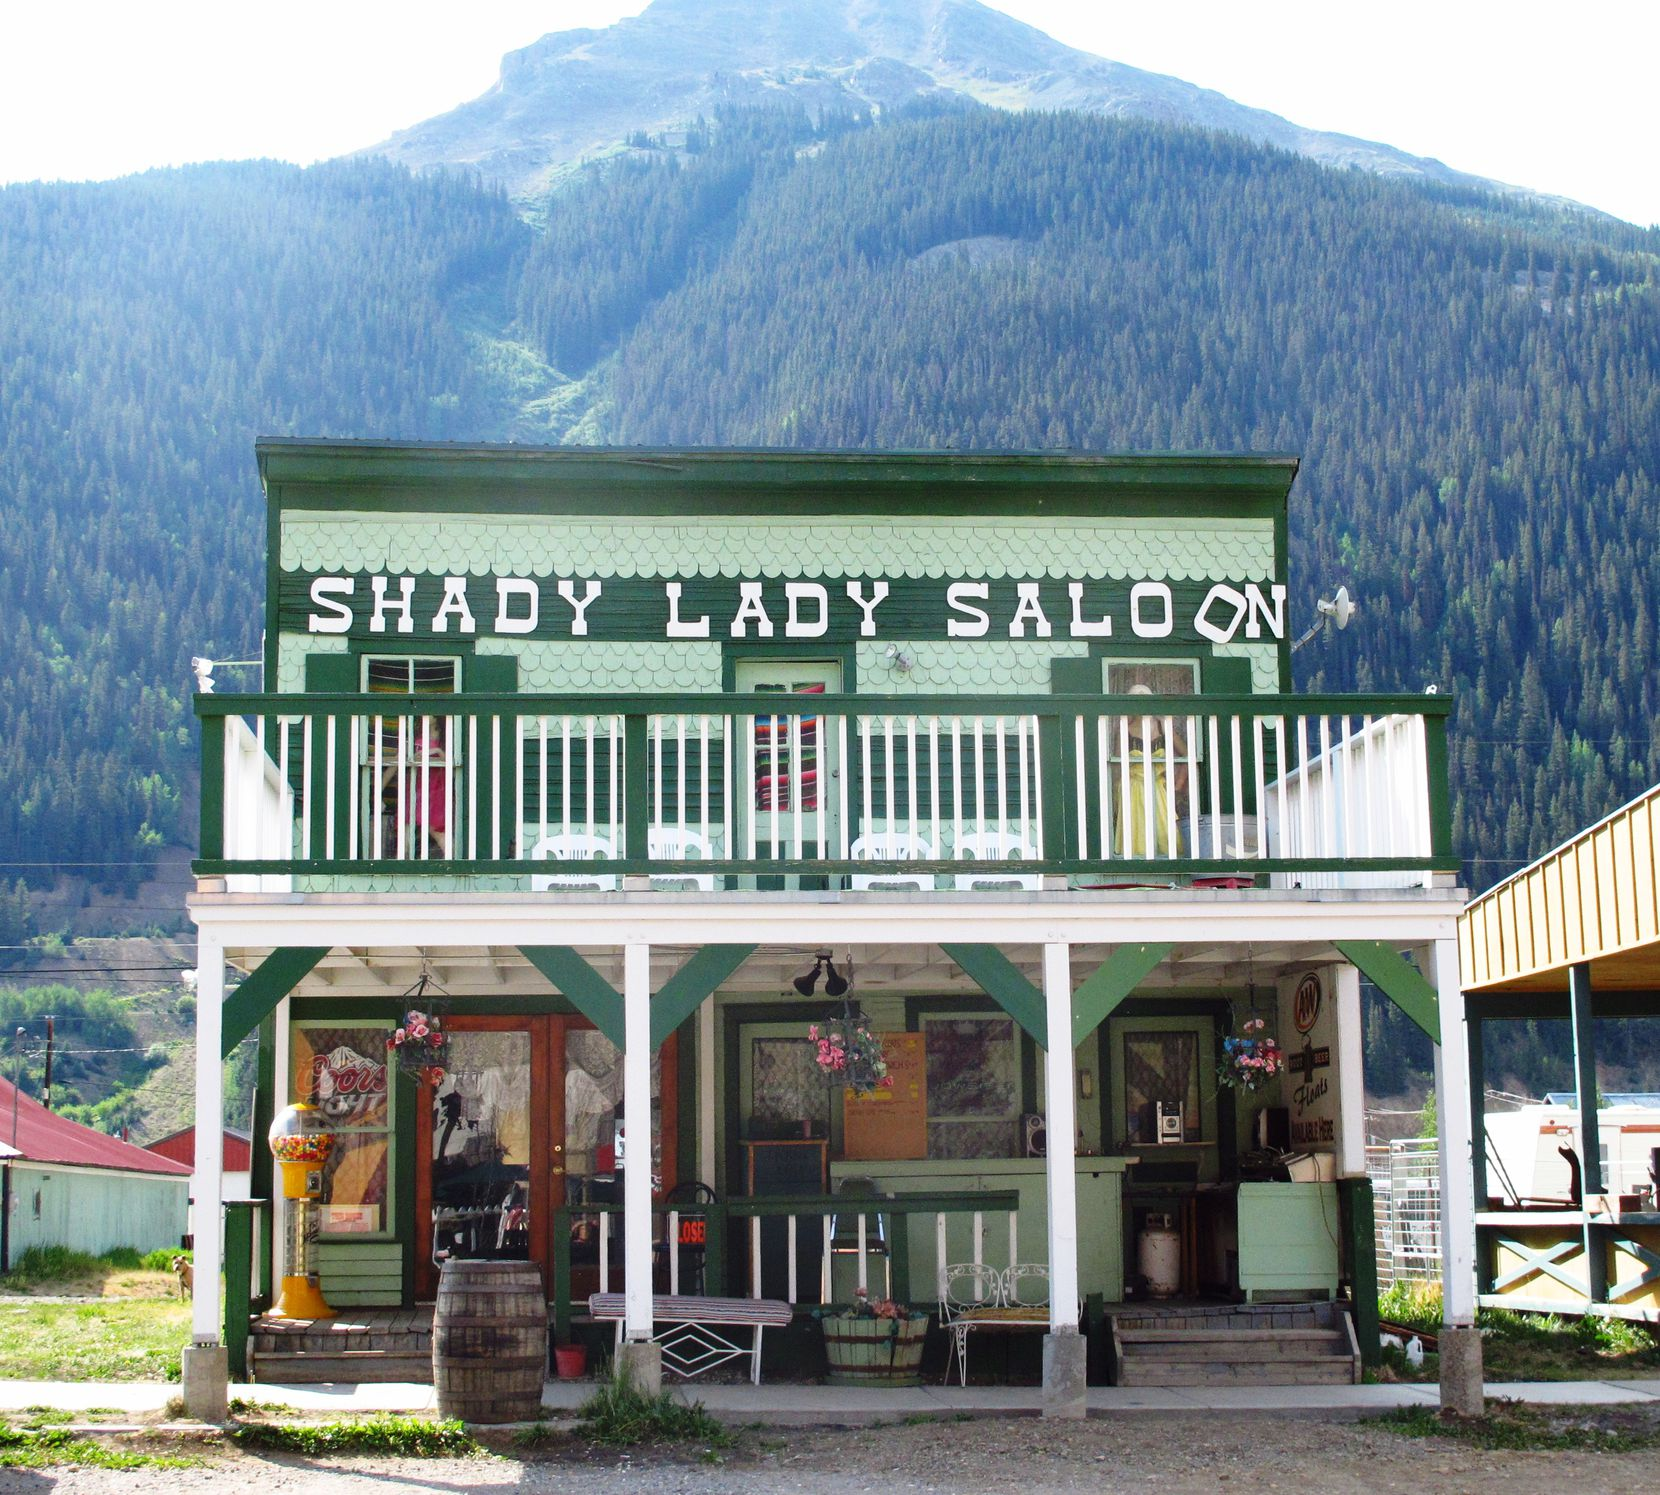 The Shady Lady Saloon is reminiscent of Old West times in Silverton, Colo.